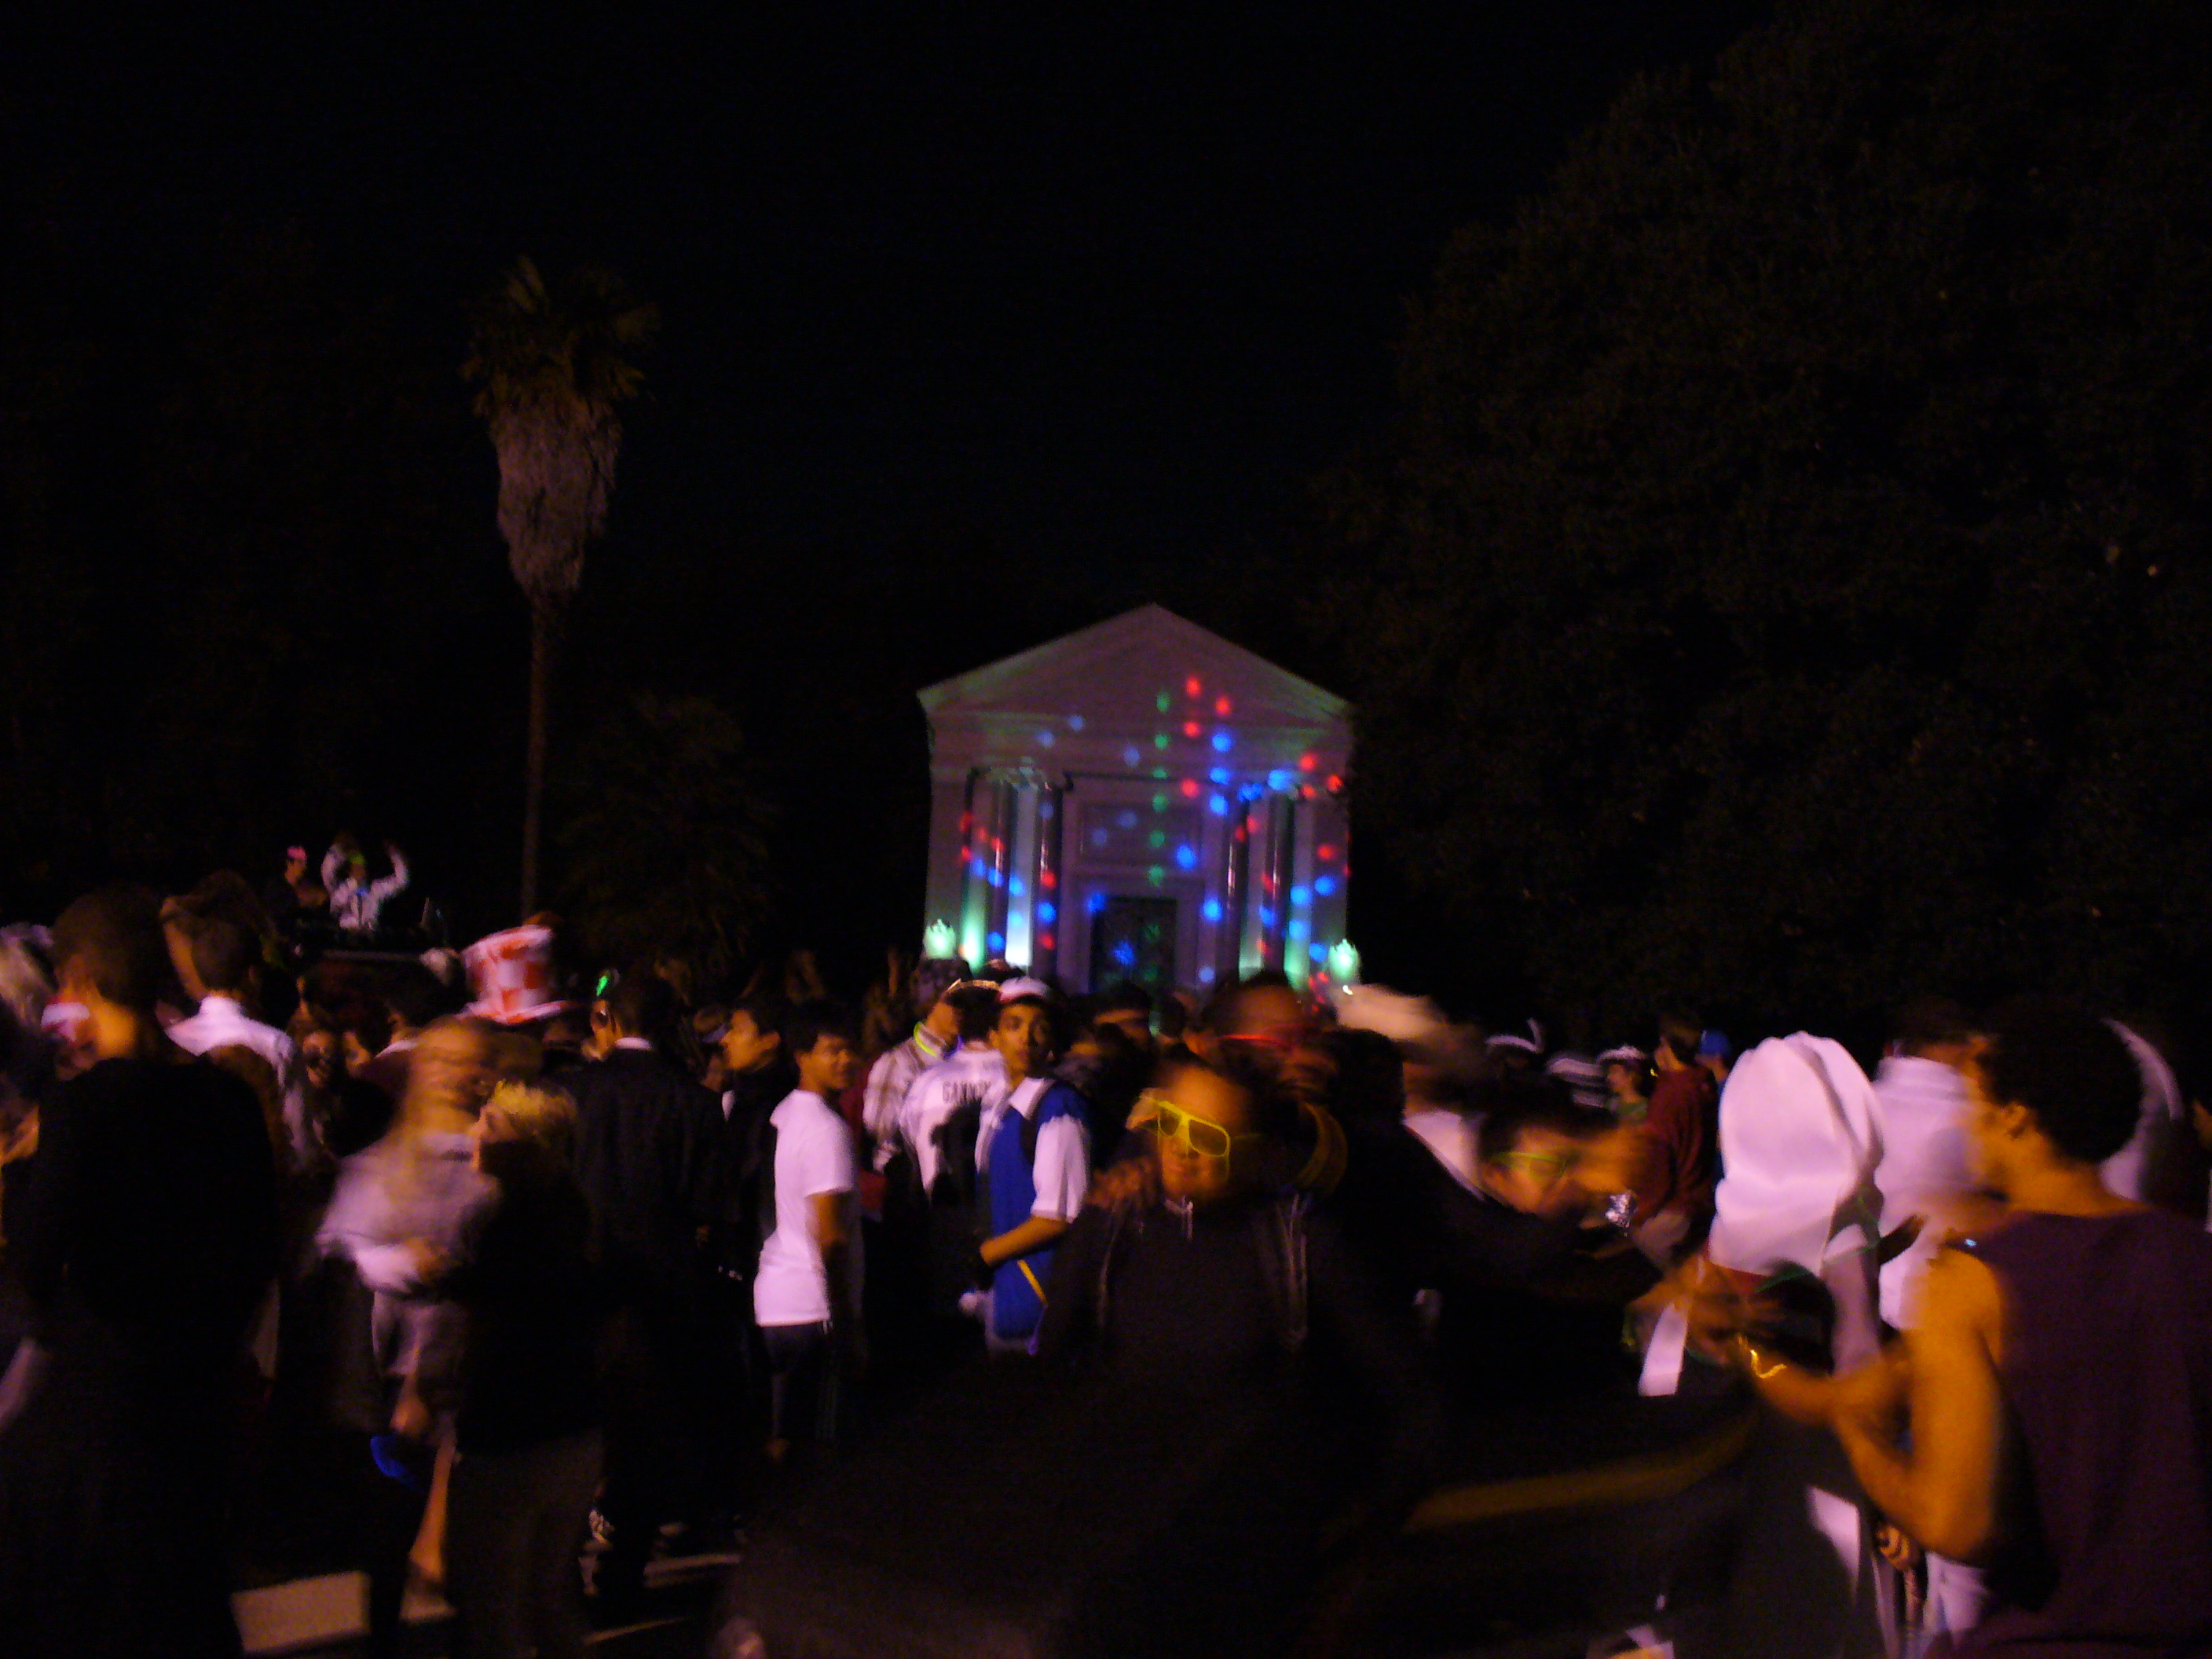 File:Stanford Mausoleum Halloween Party 3.jpg - Wikimedia Commons